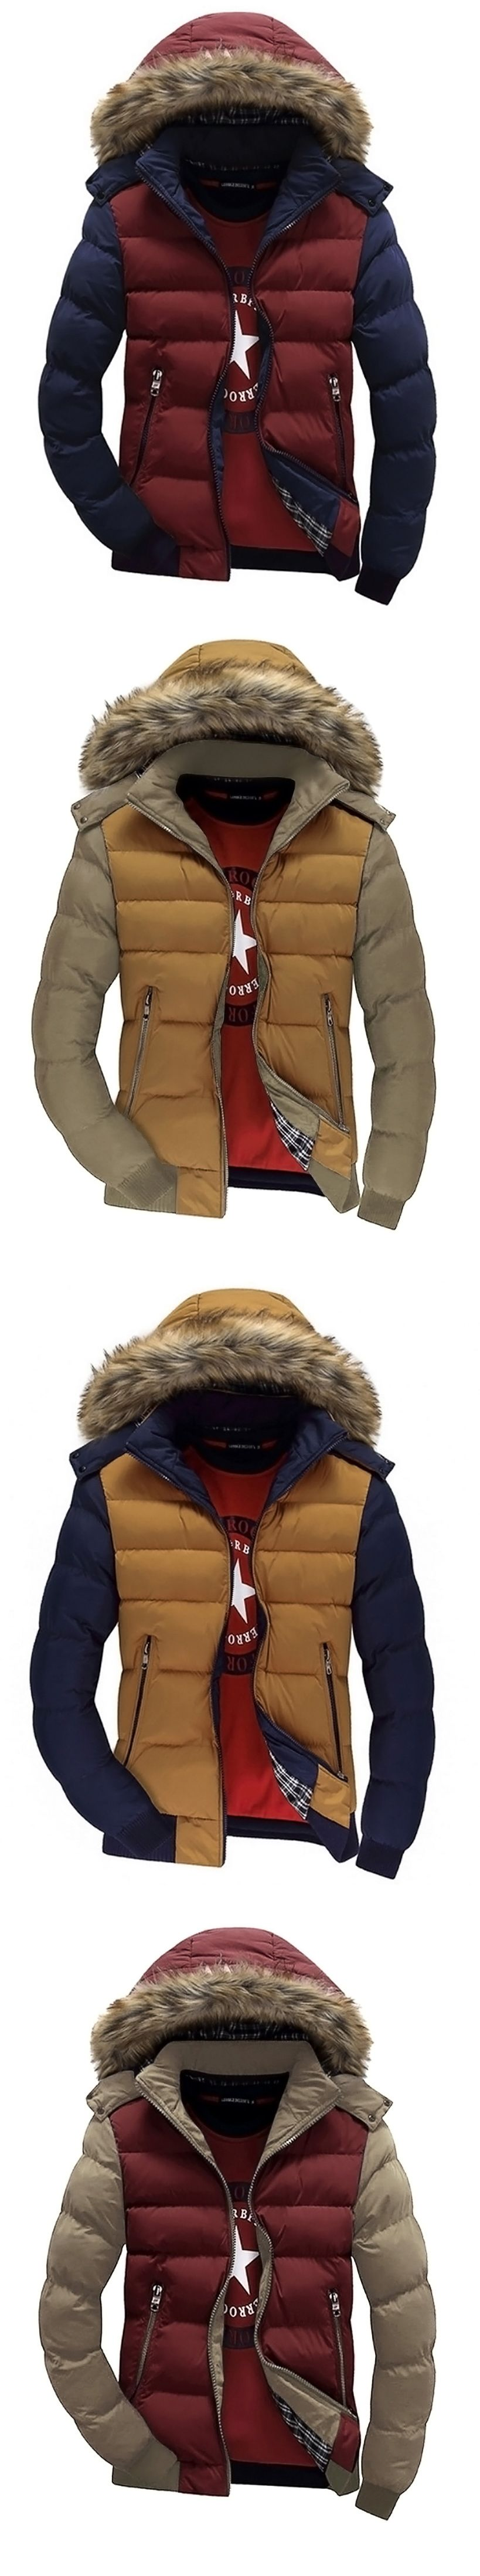 Men Casual Parka Down Coat Hooded Padded Zipper Contrast Color Outwear